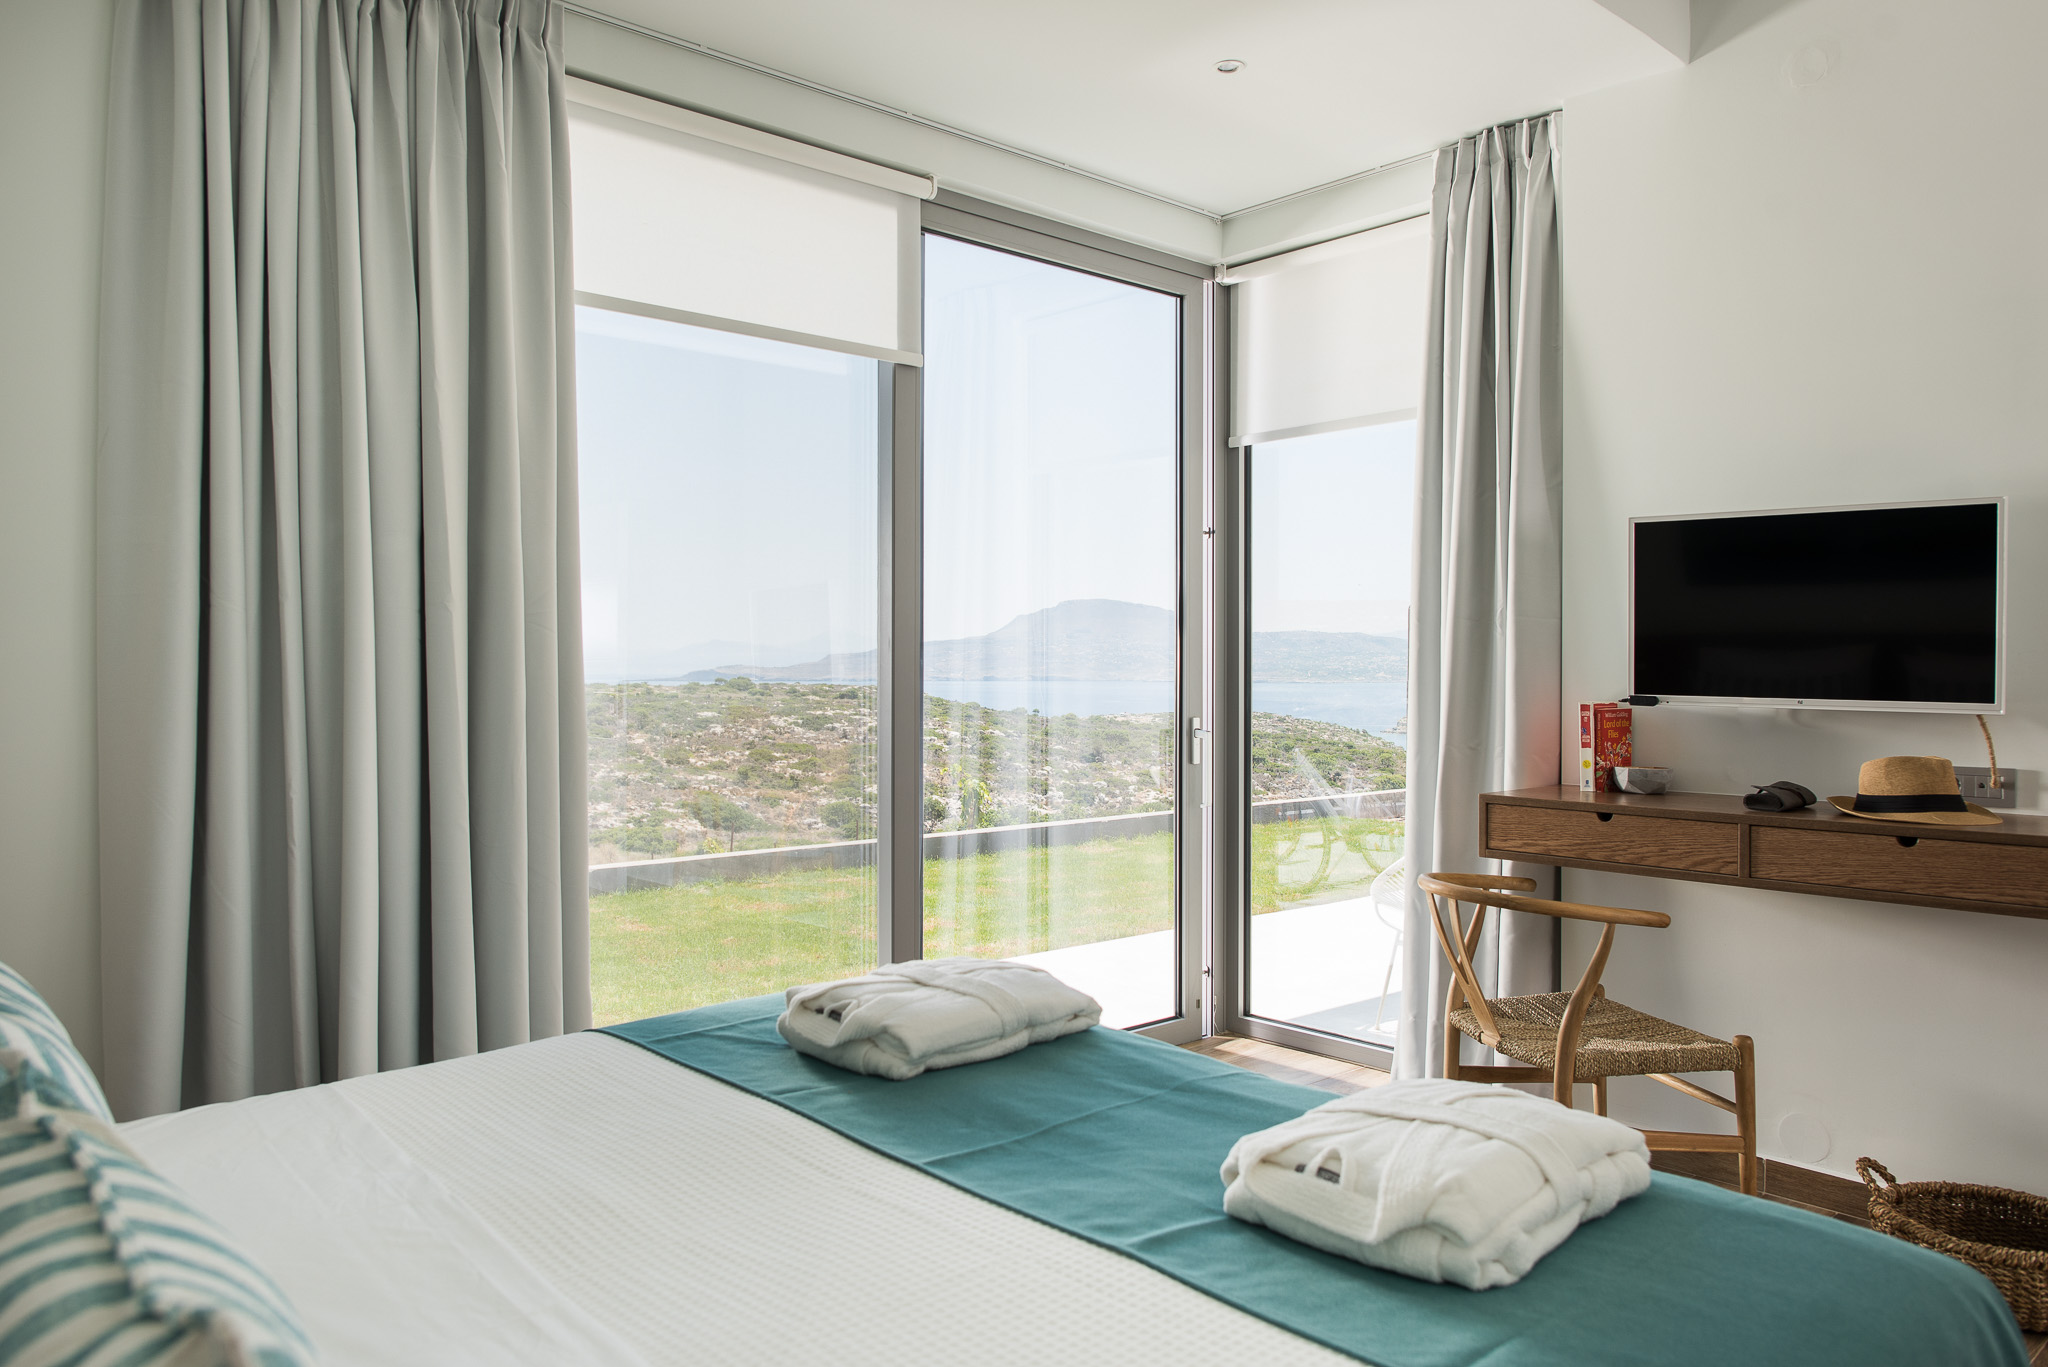 all bedrooms offer spectacular views